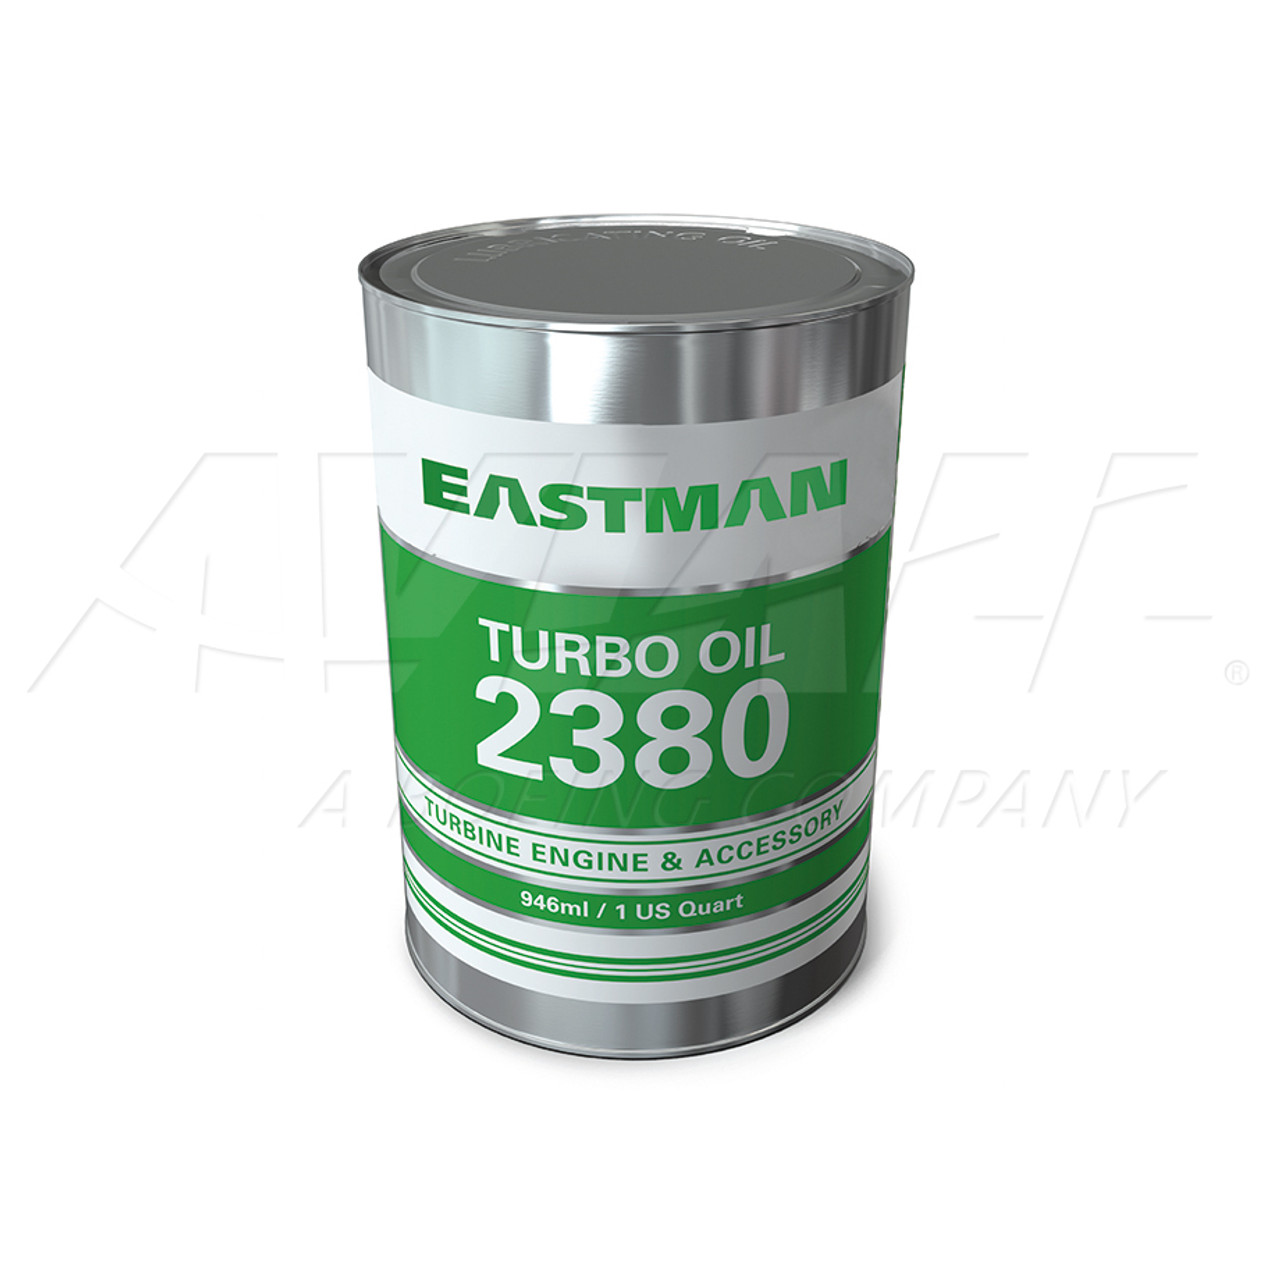 Eastman 2380 Turbine Engine Oil - Quart